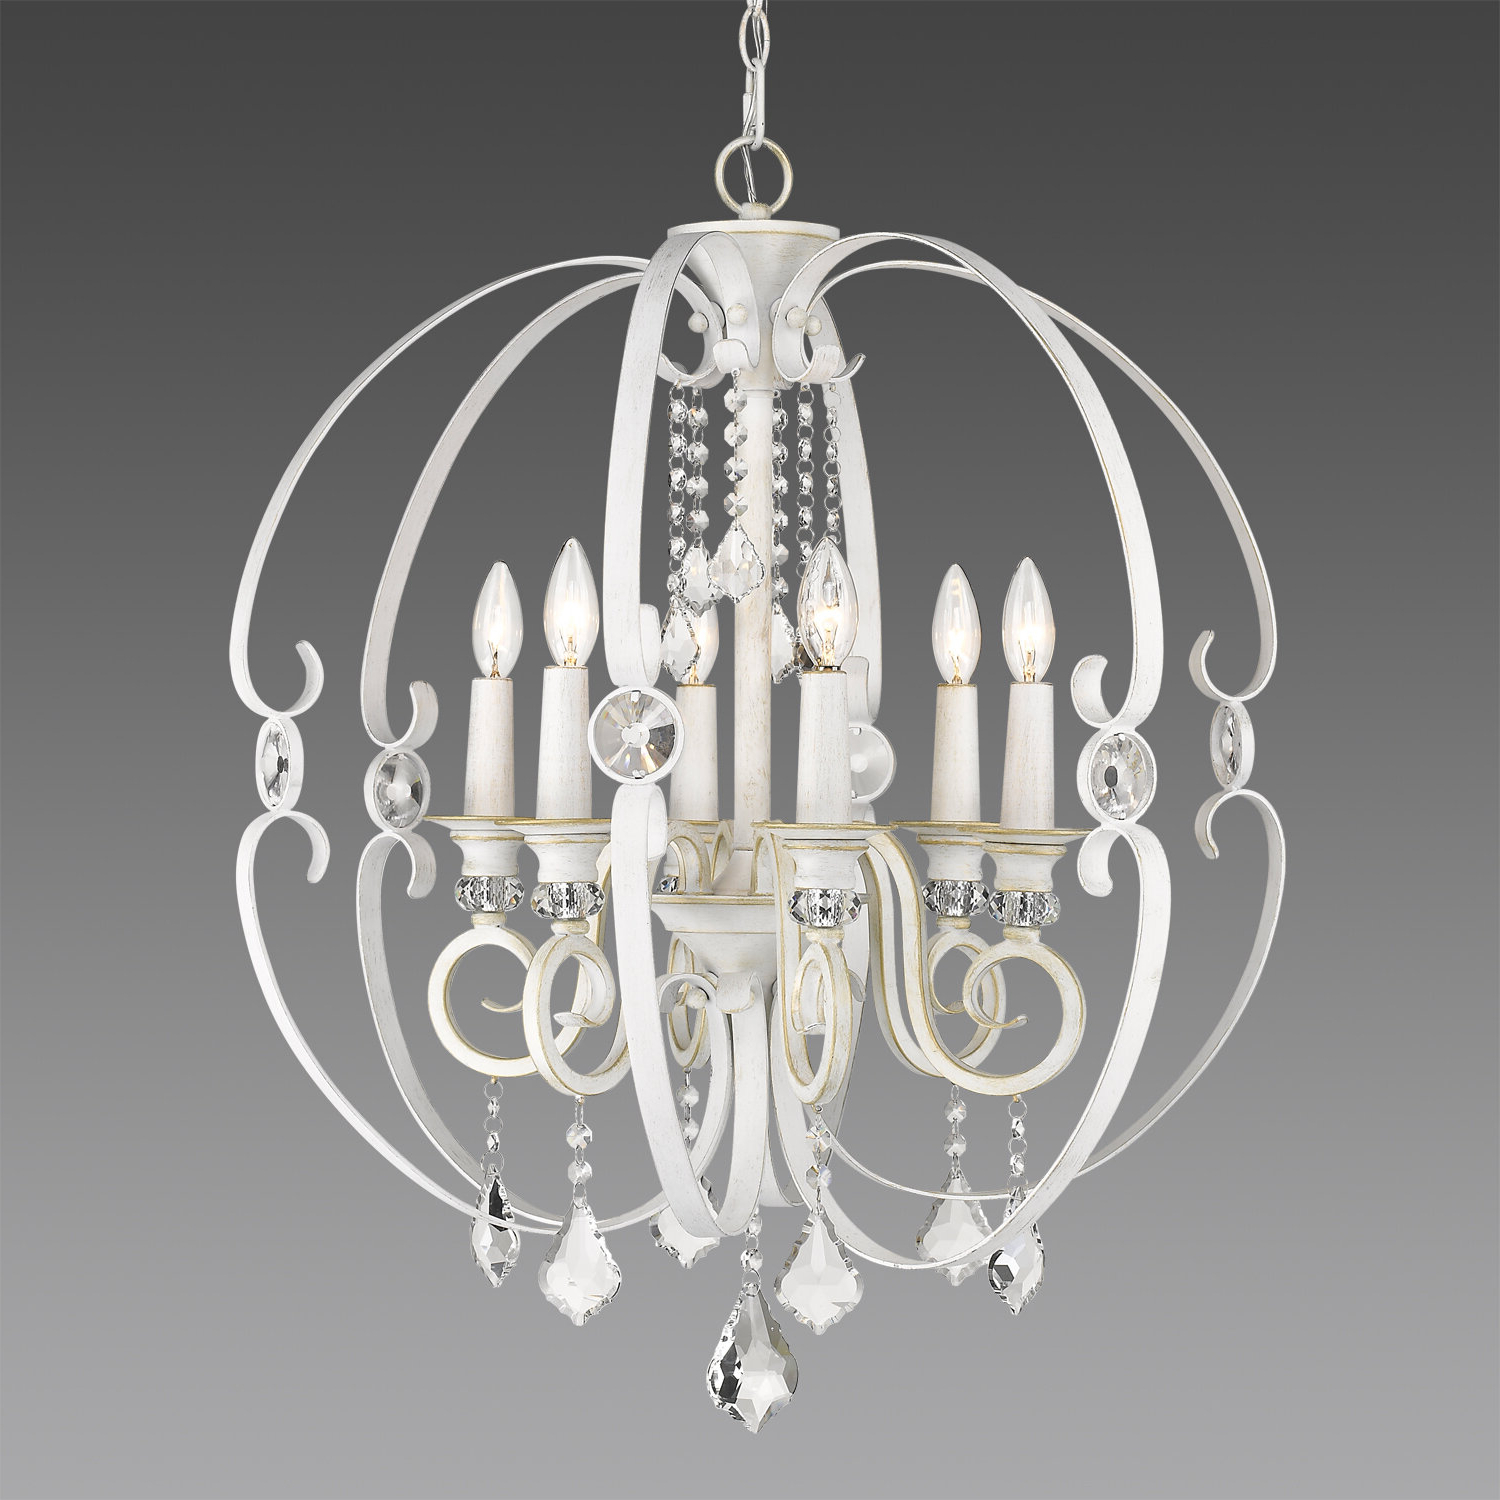 Hardouin 6 Light Globe Chandelier Regarding Fashionable Alden 6 Light Globe Chandeliers (Gallery 13 of 20)